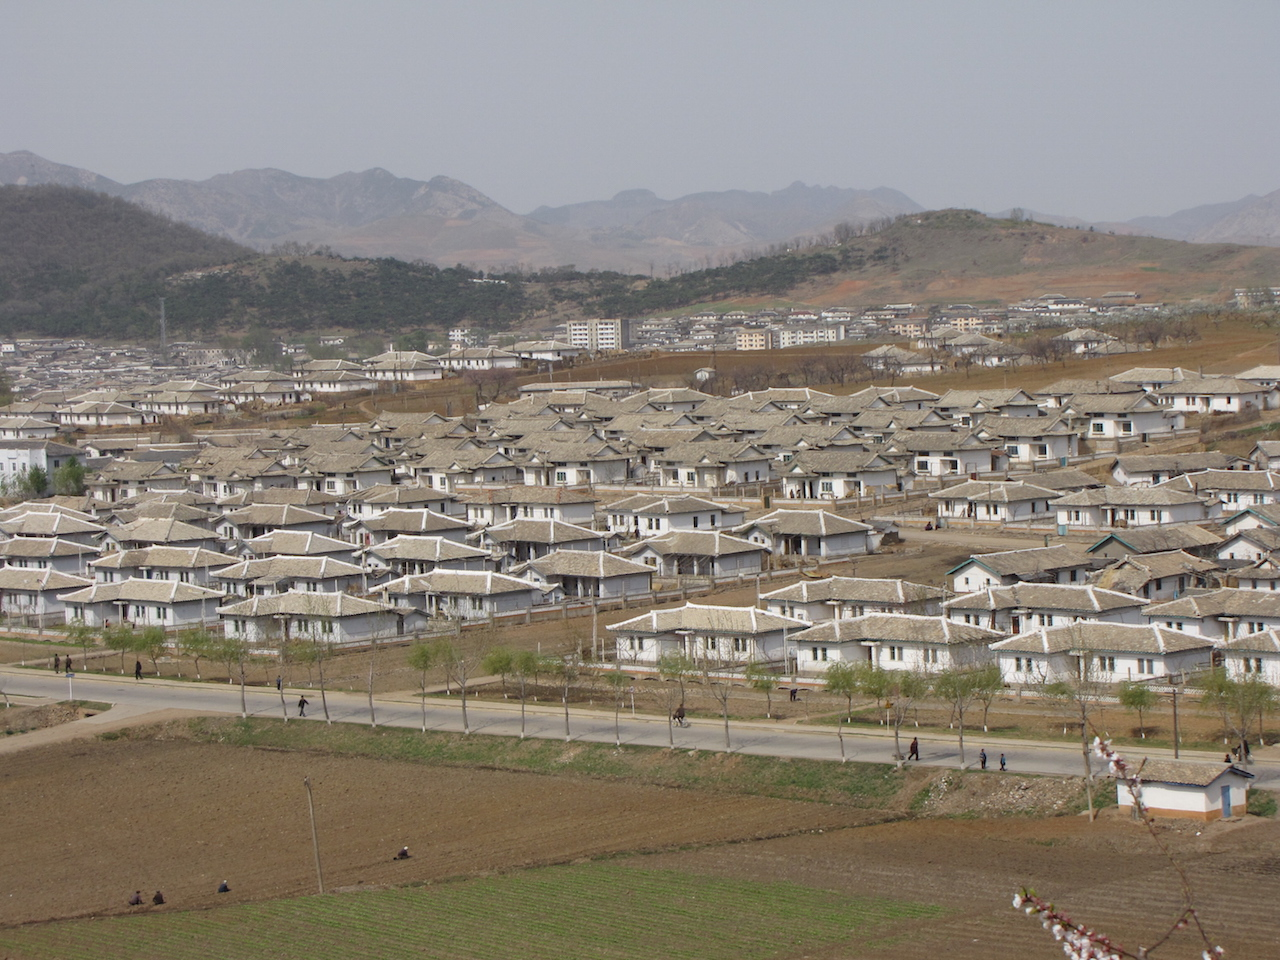 27 april 2012 Kaesong – Nampho